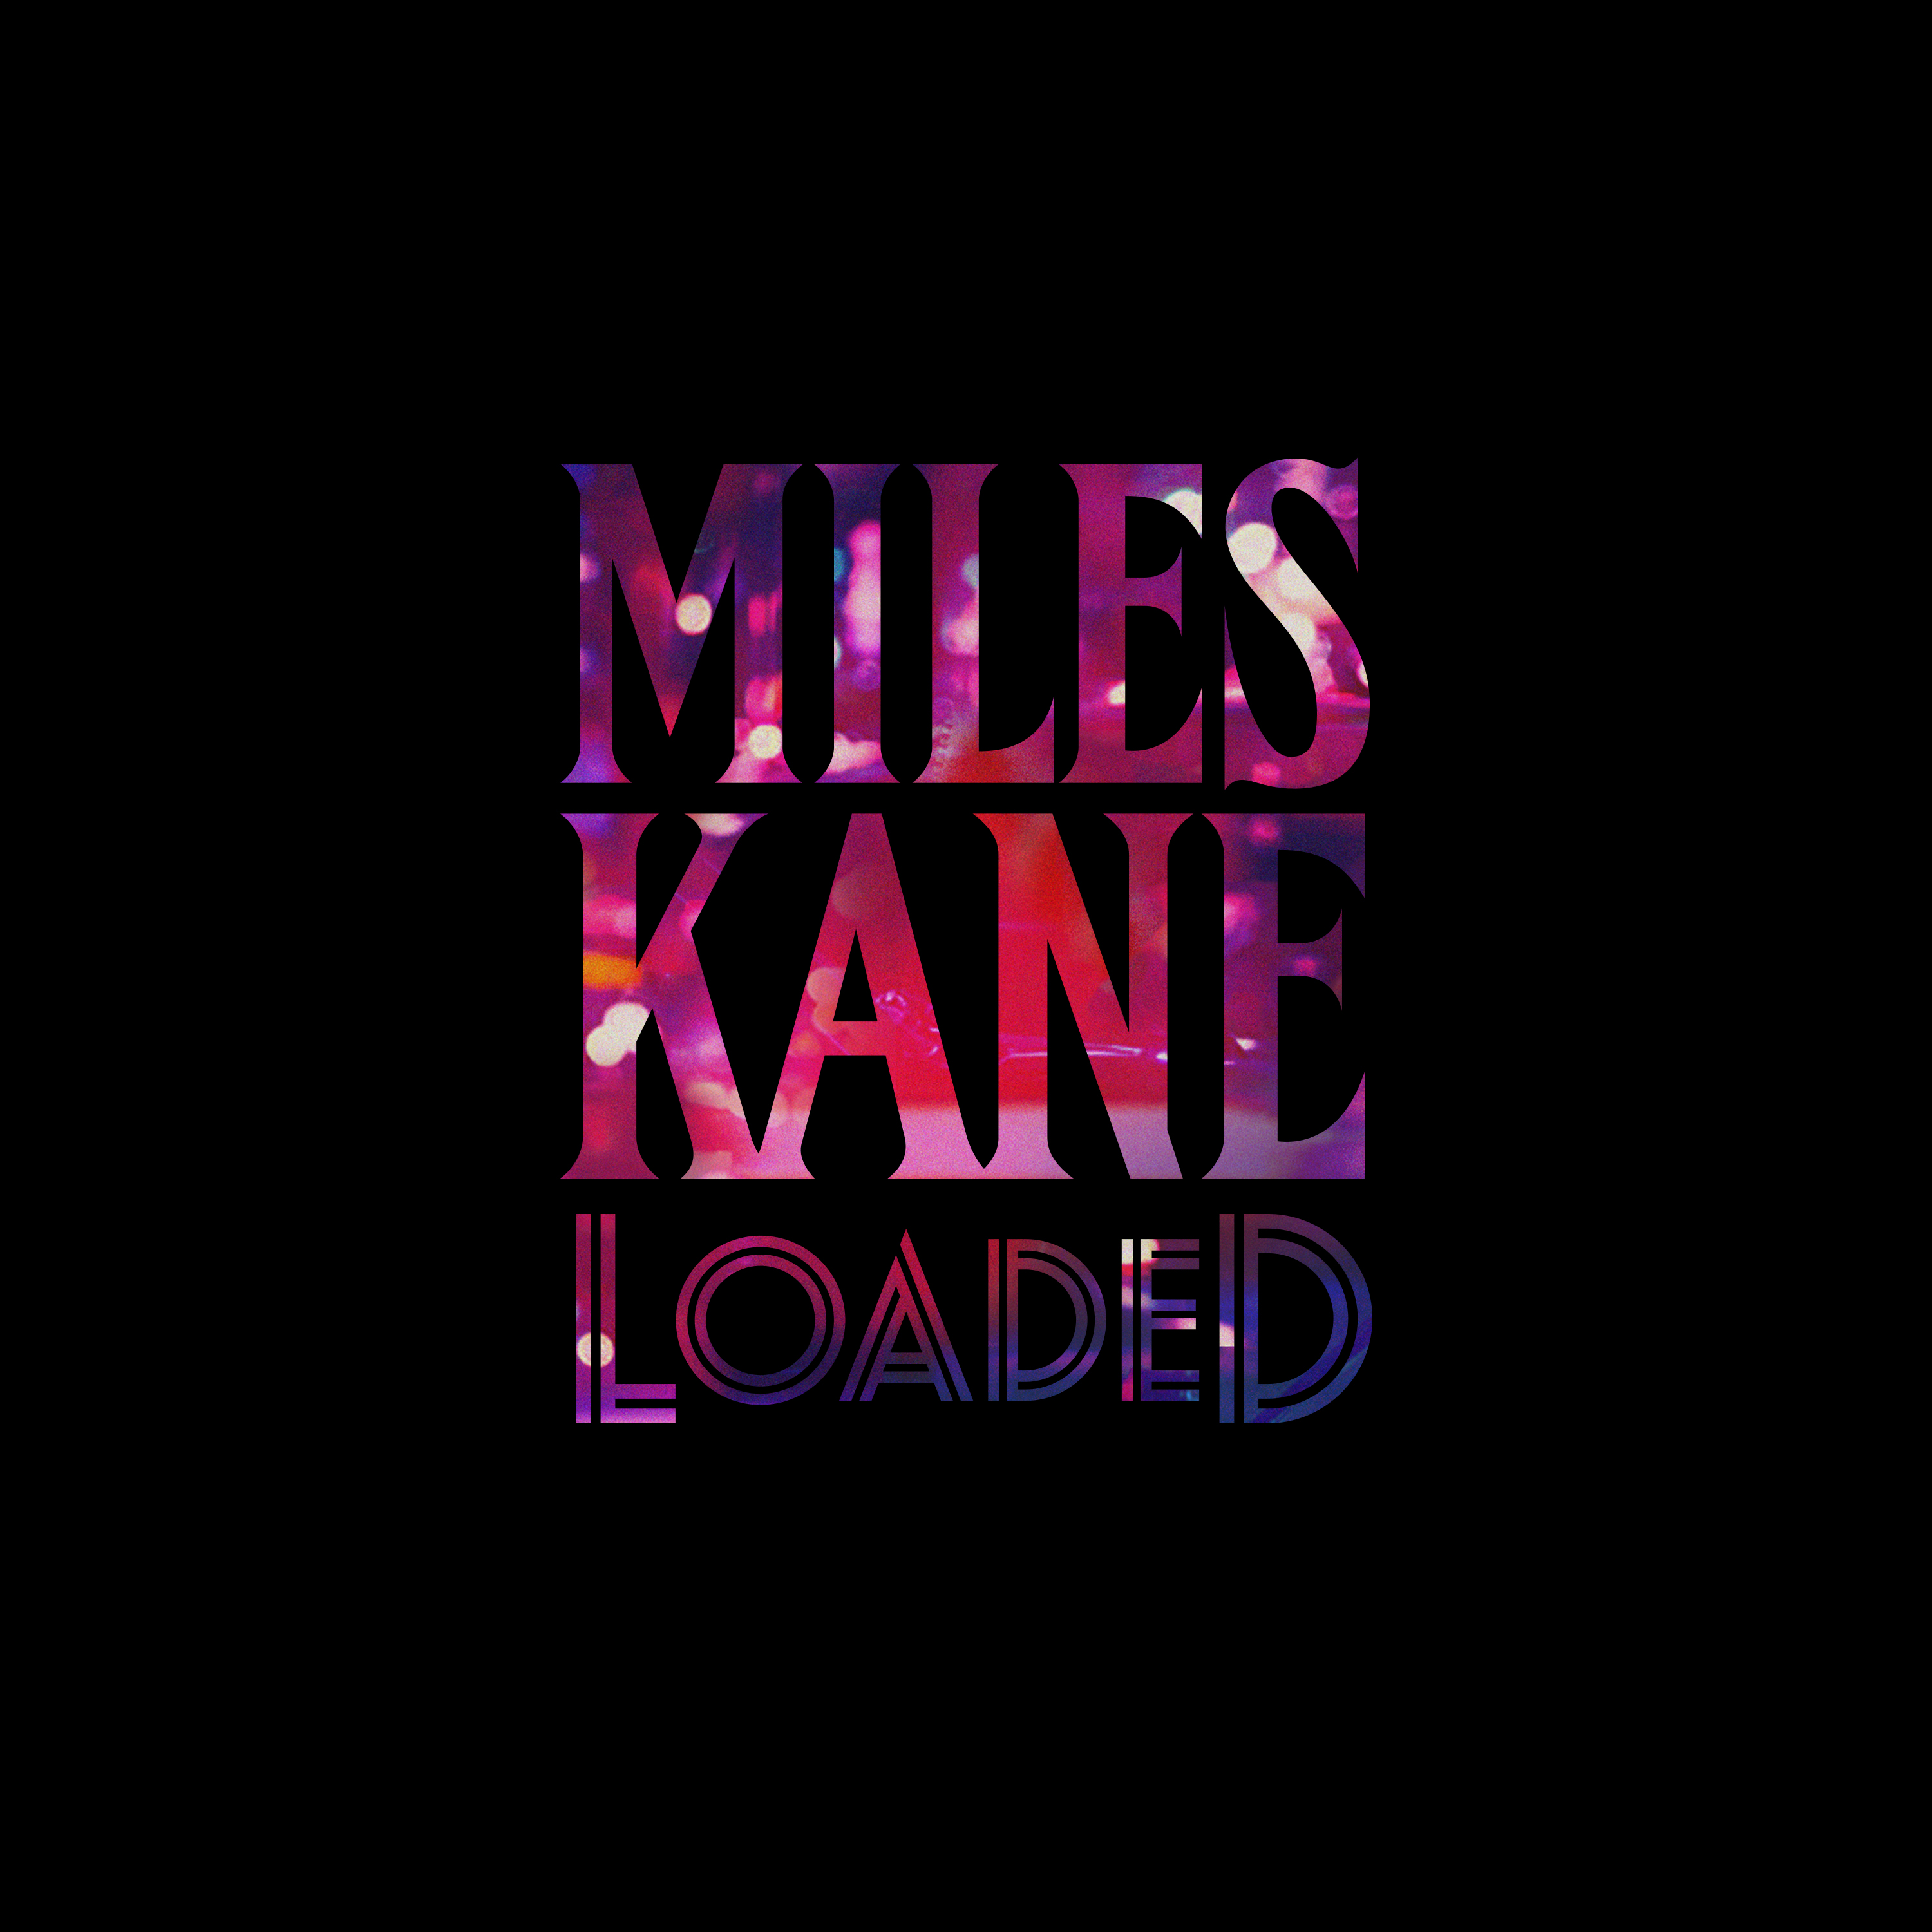 Loaded (song)